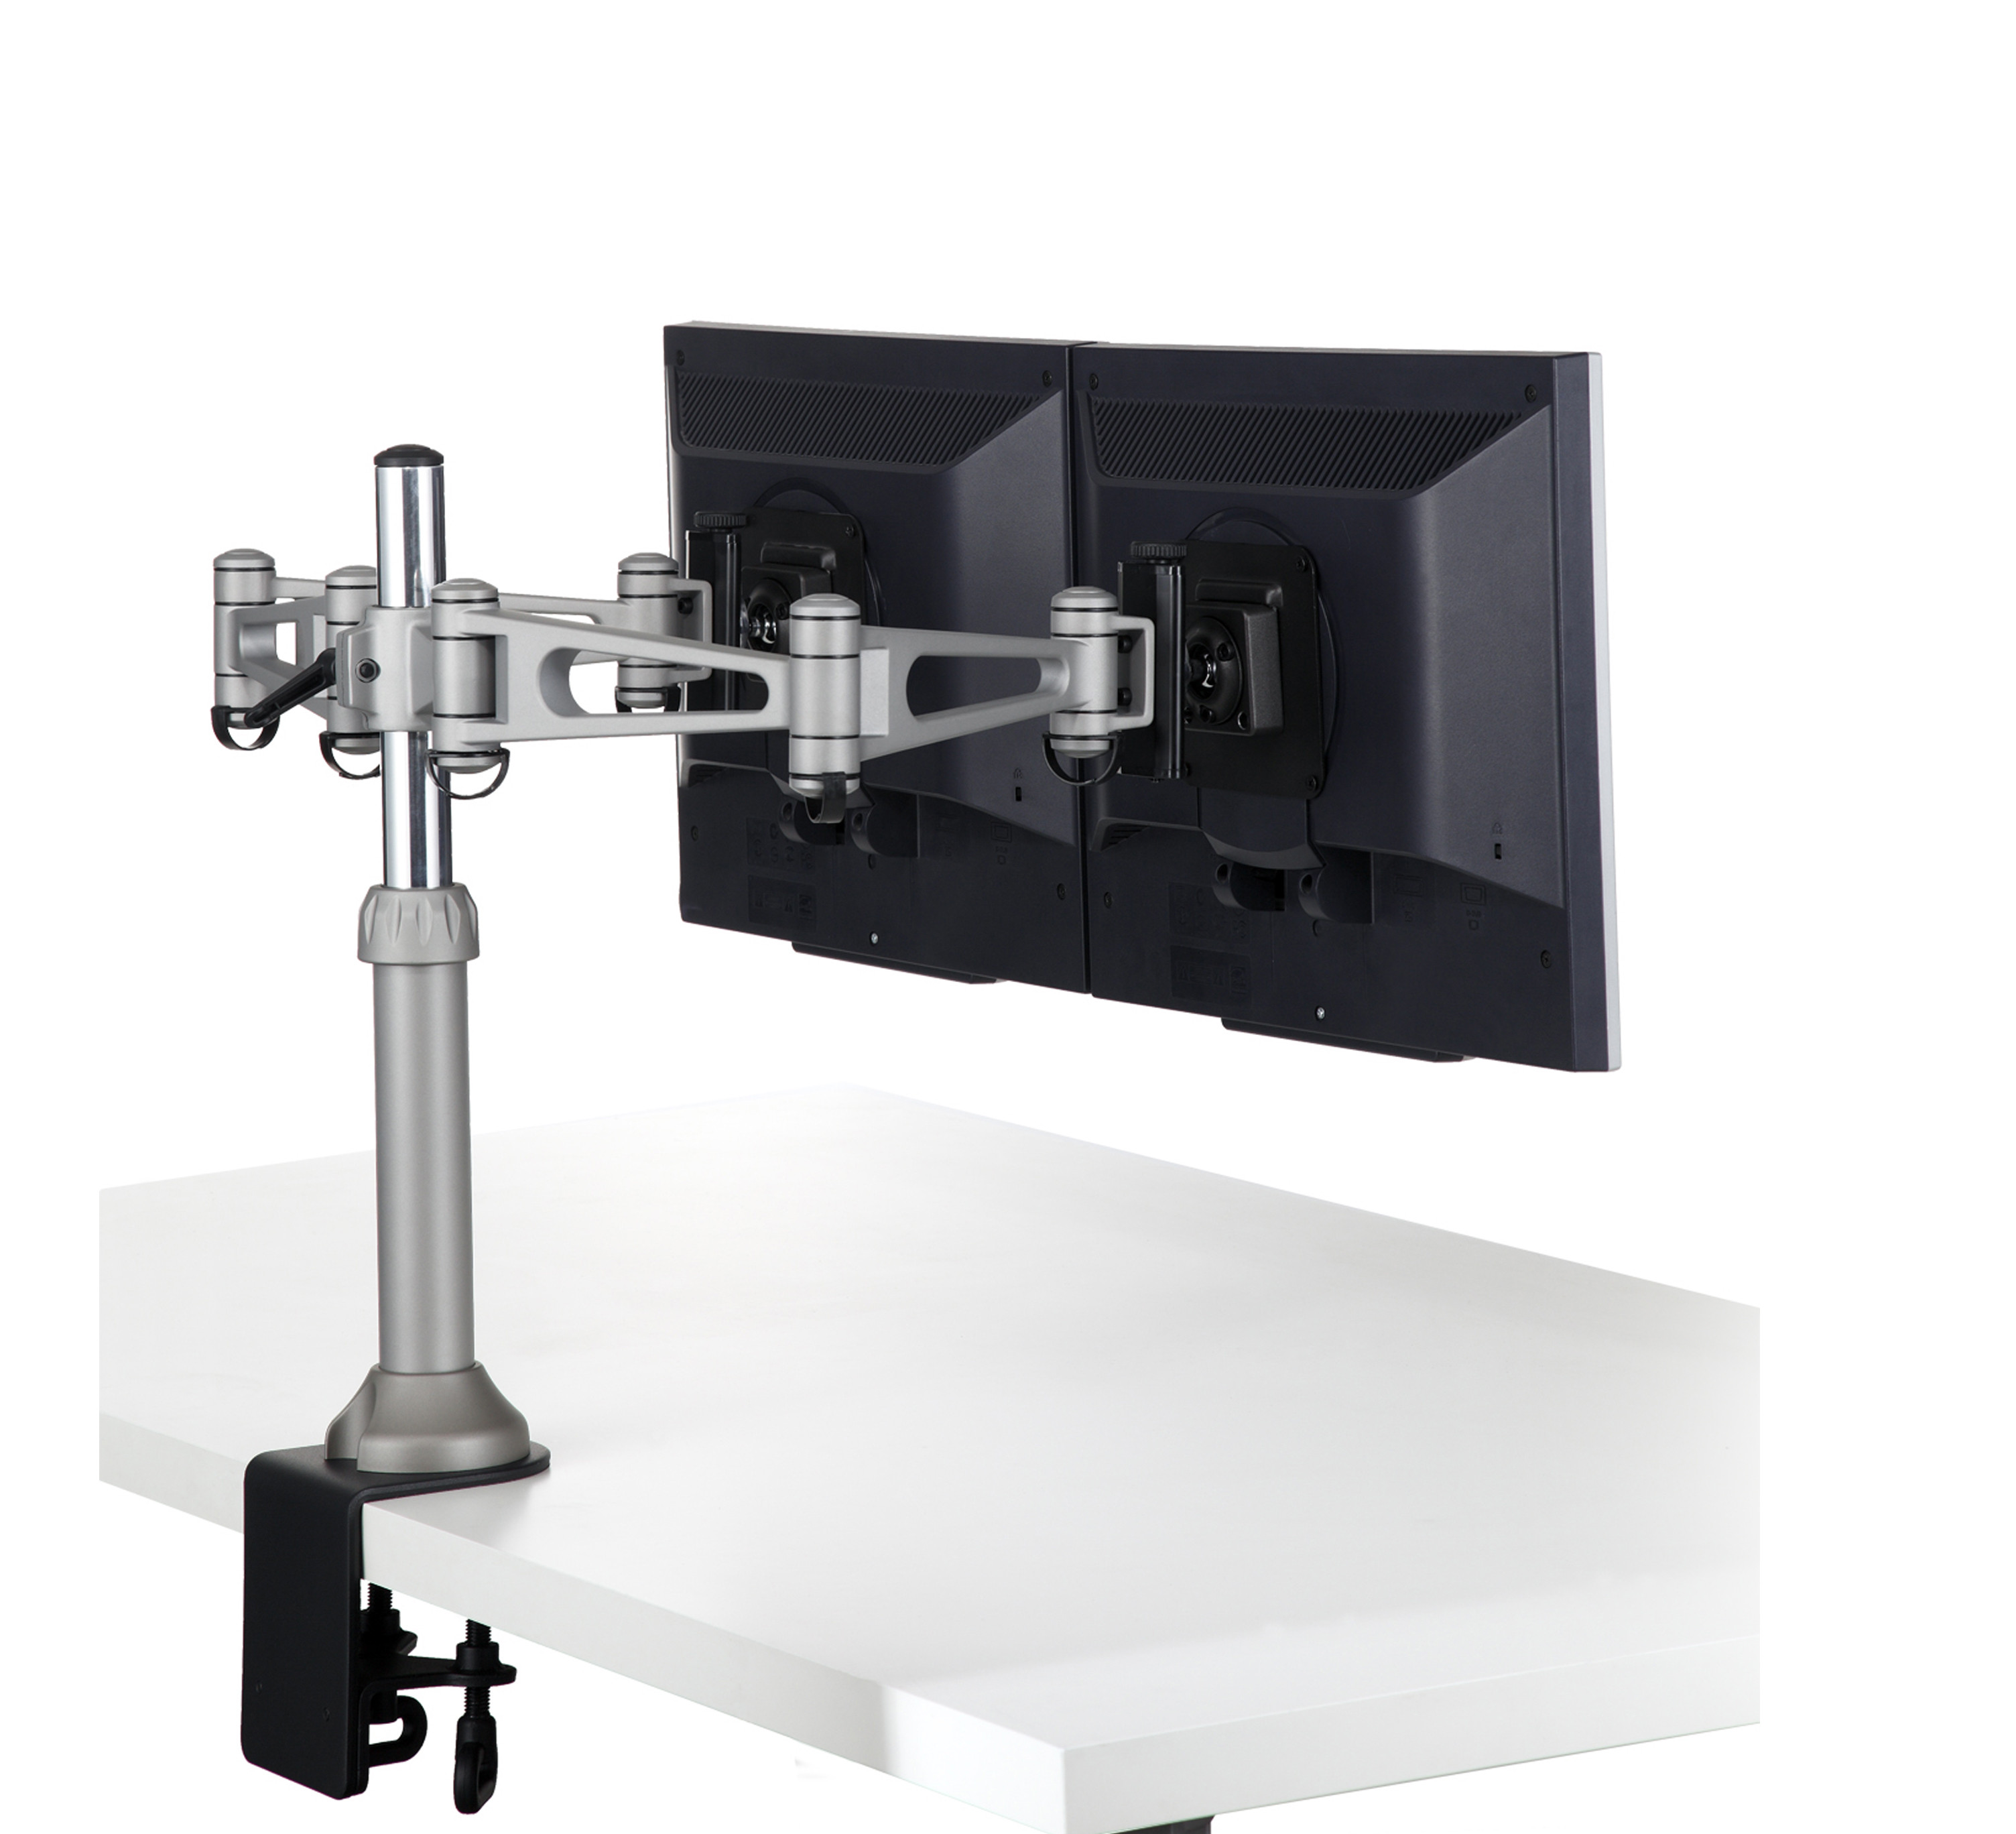 Monitor Arm by Humanscale